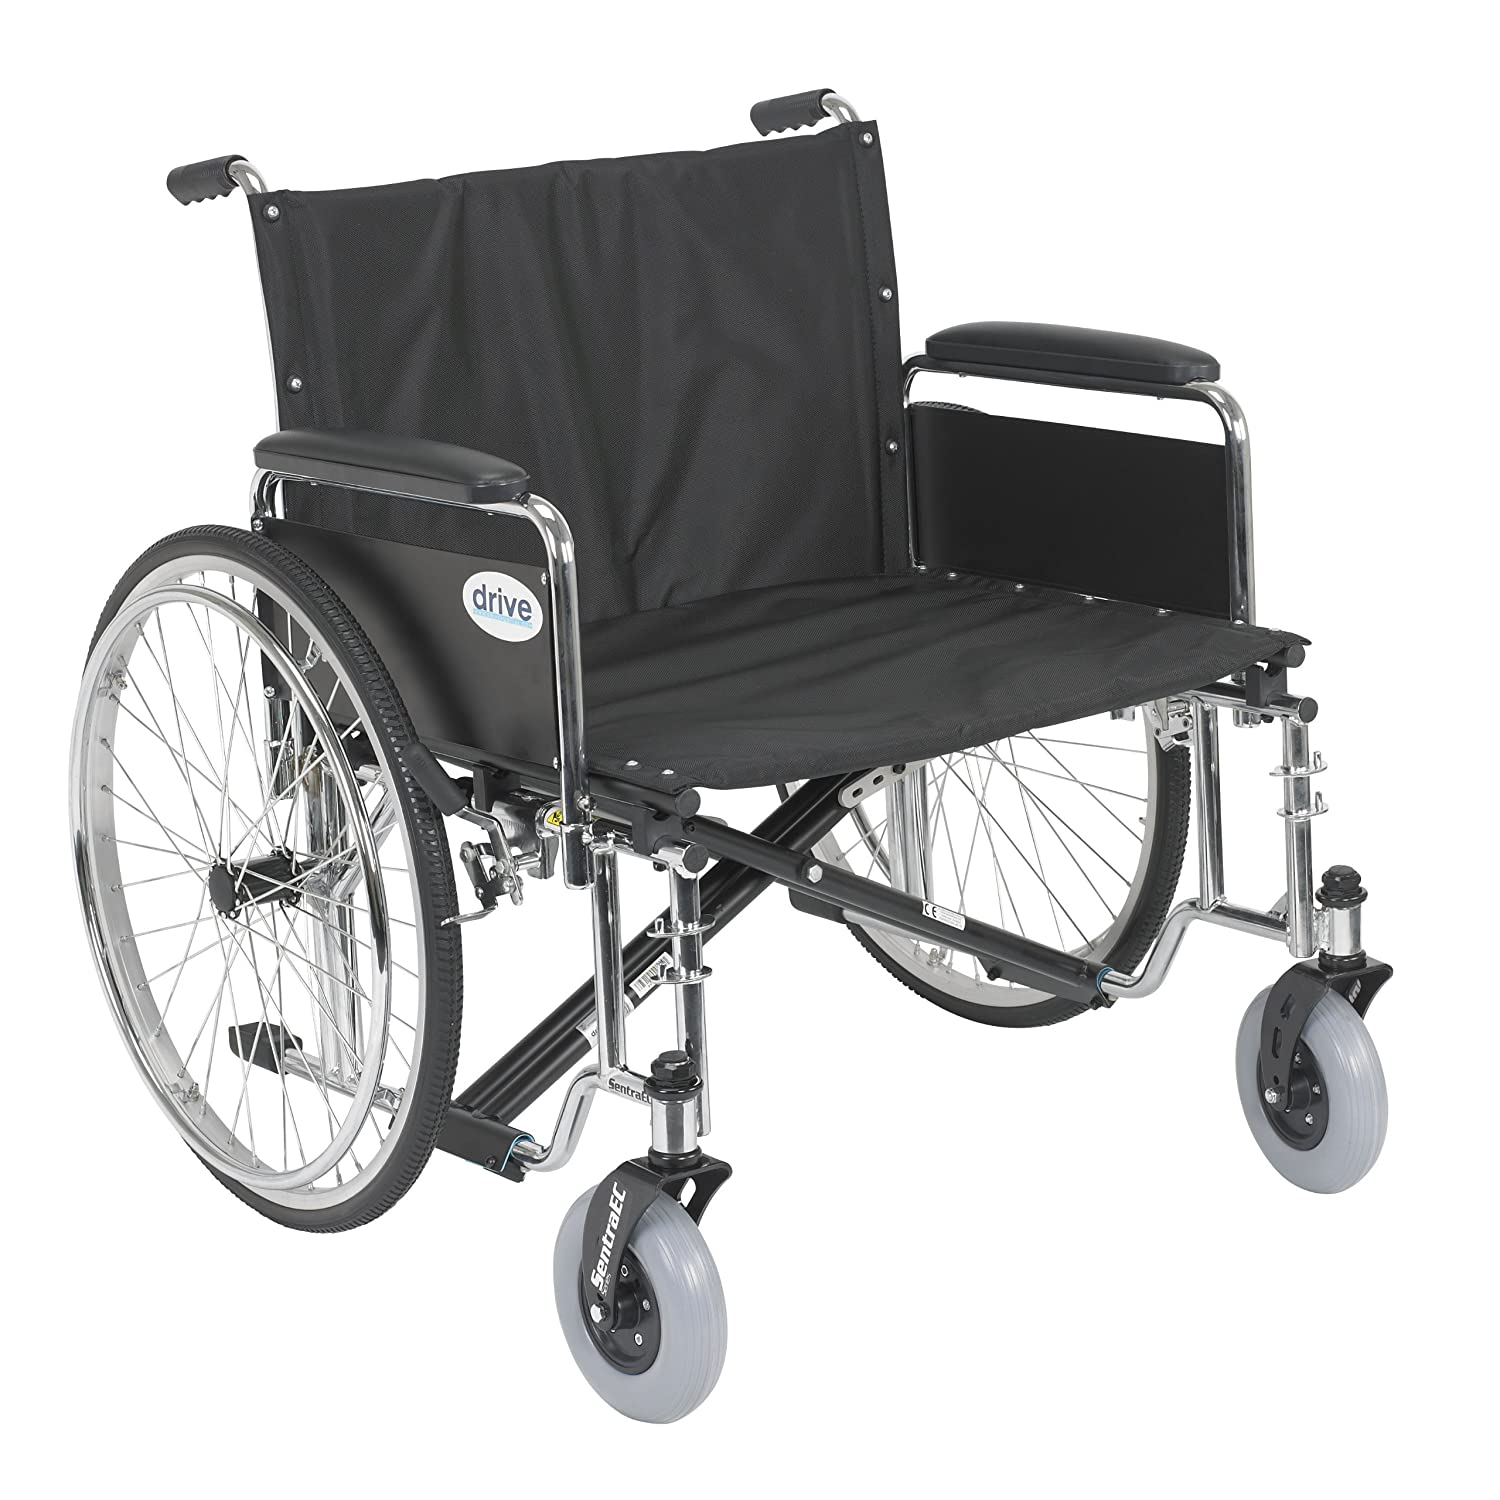 One arm drive wheelchair - Amazon Com Drive Medical Sentra Ec Heavy Duty Extra Wide Wheelchair With Various Arm Styles Arms Black 26 Health Personal Care